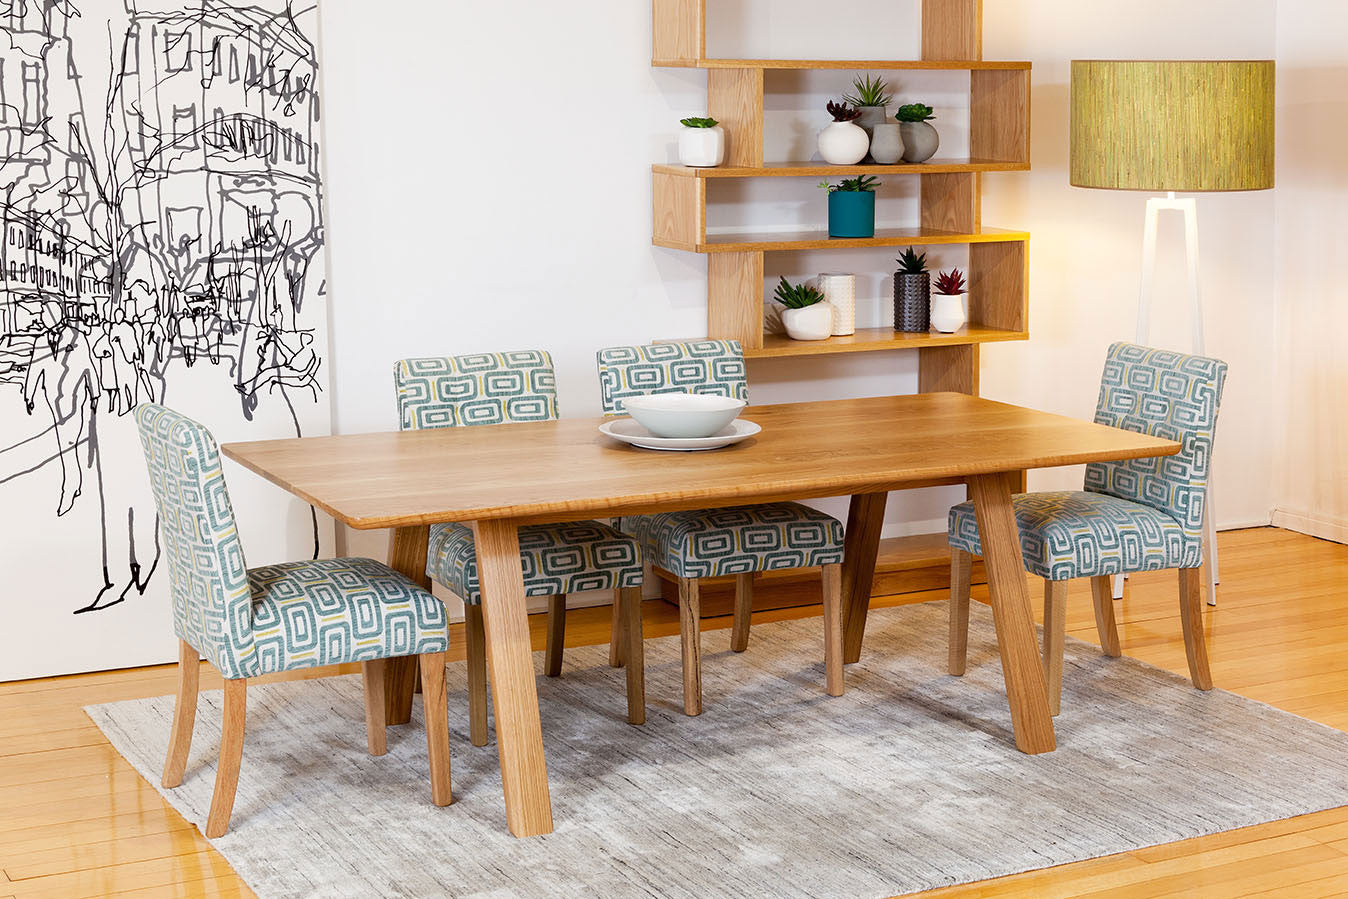 Trestle Solid American Oak Timber Dining Table Featured With Shelving Unit And Marrimeko Wall